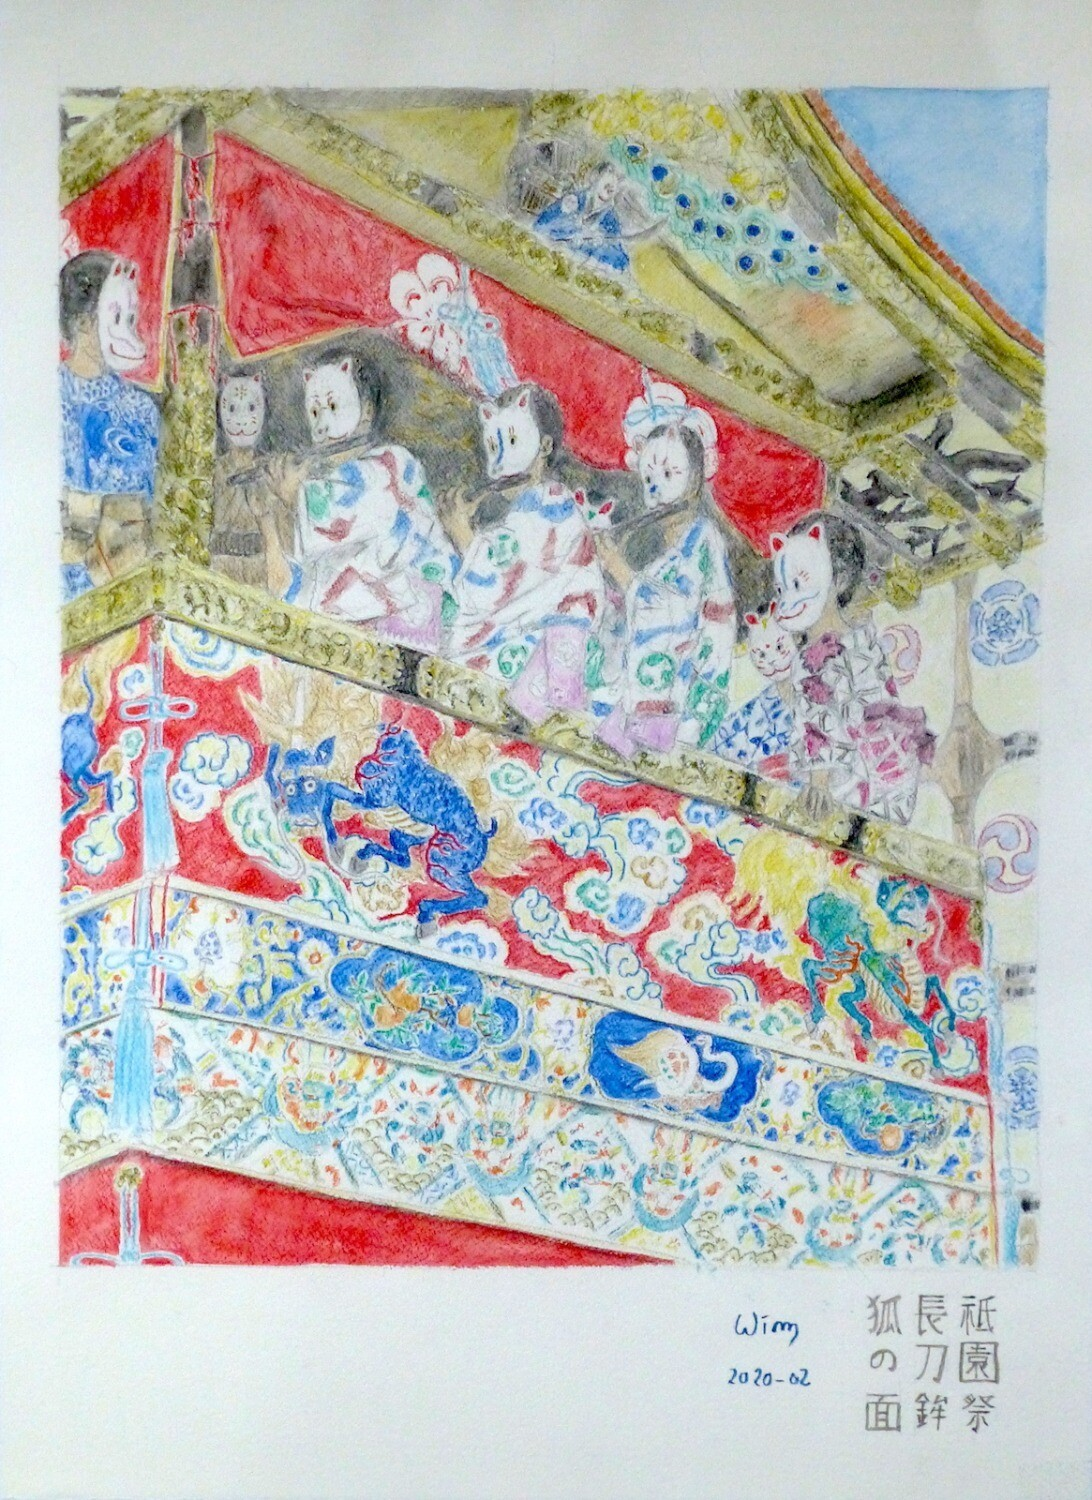 A watercolour drawing showing the top part of a Japanese festival float, which are like a house on wheels, but every surface is intricately decorated. In it sit three masked flute players and some other masked figures, all wearing fox masks (kitsune). <br />The he drawing is very colourful in watercolours, mostly red, blue and yellow. There are mythical animals like bulls with flaming manes, flowers, more abstract patterns, the inside of the roof has a huge peacock.